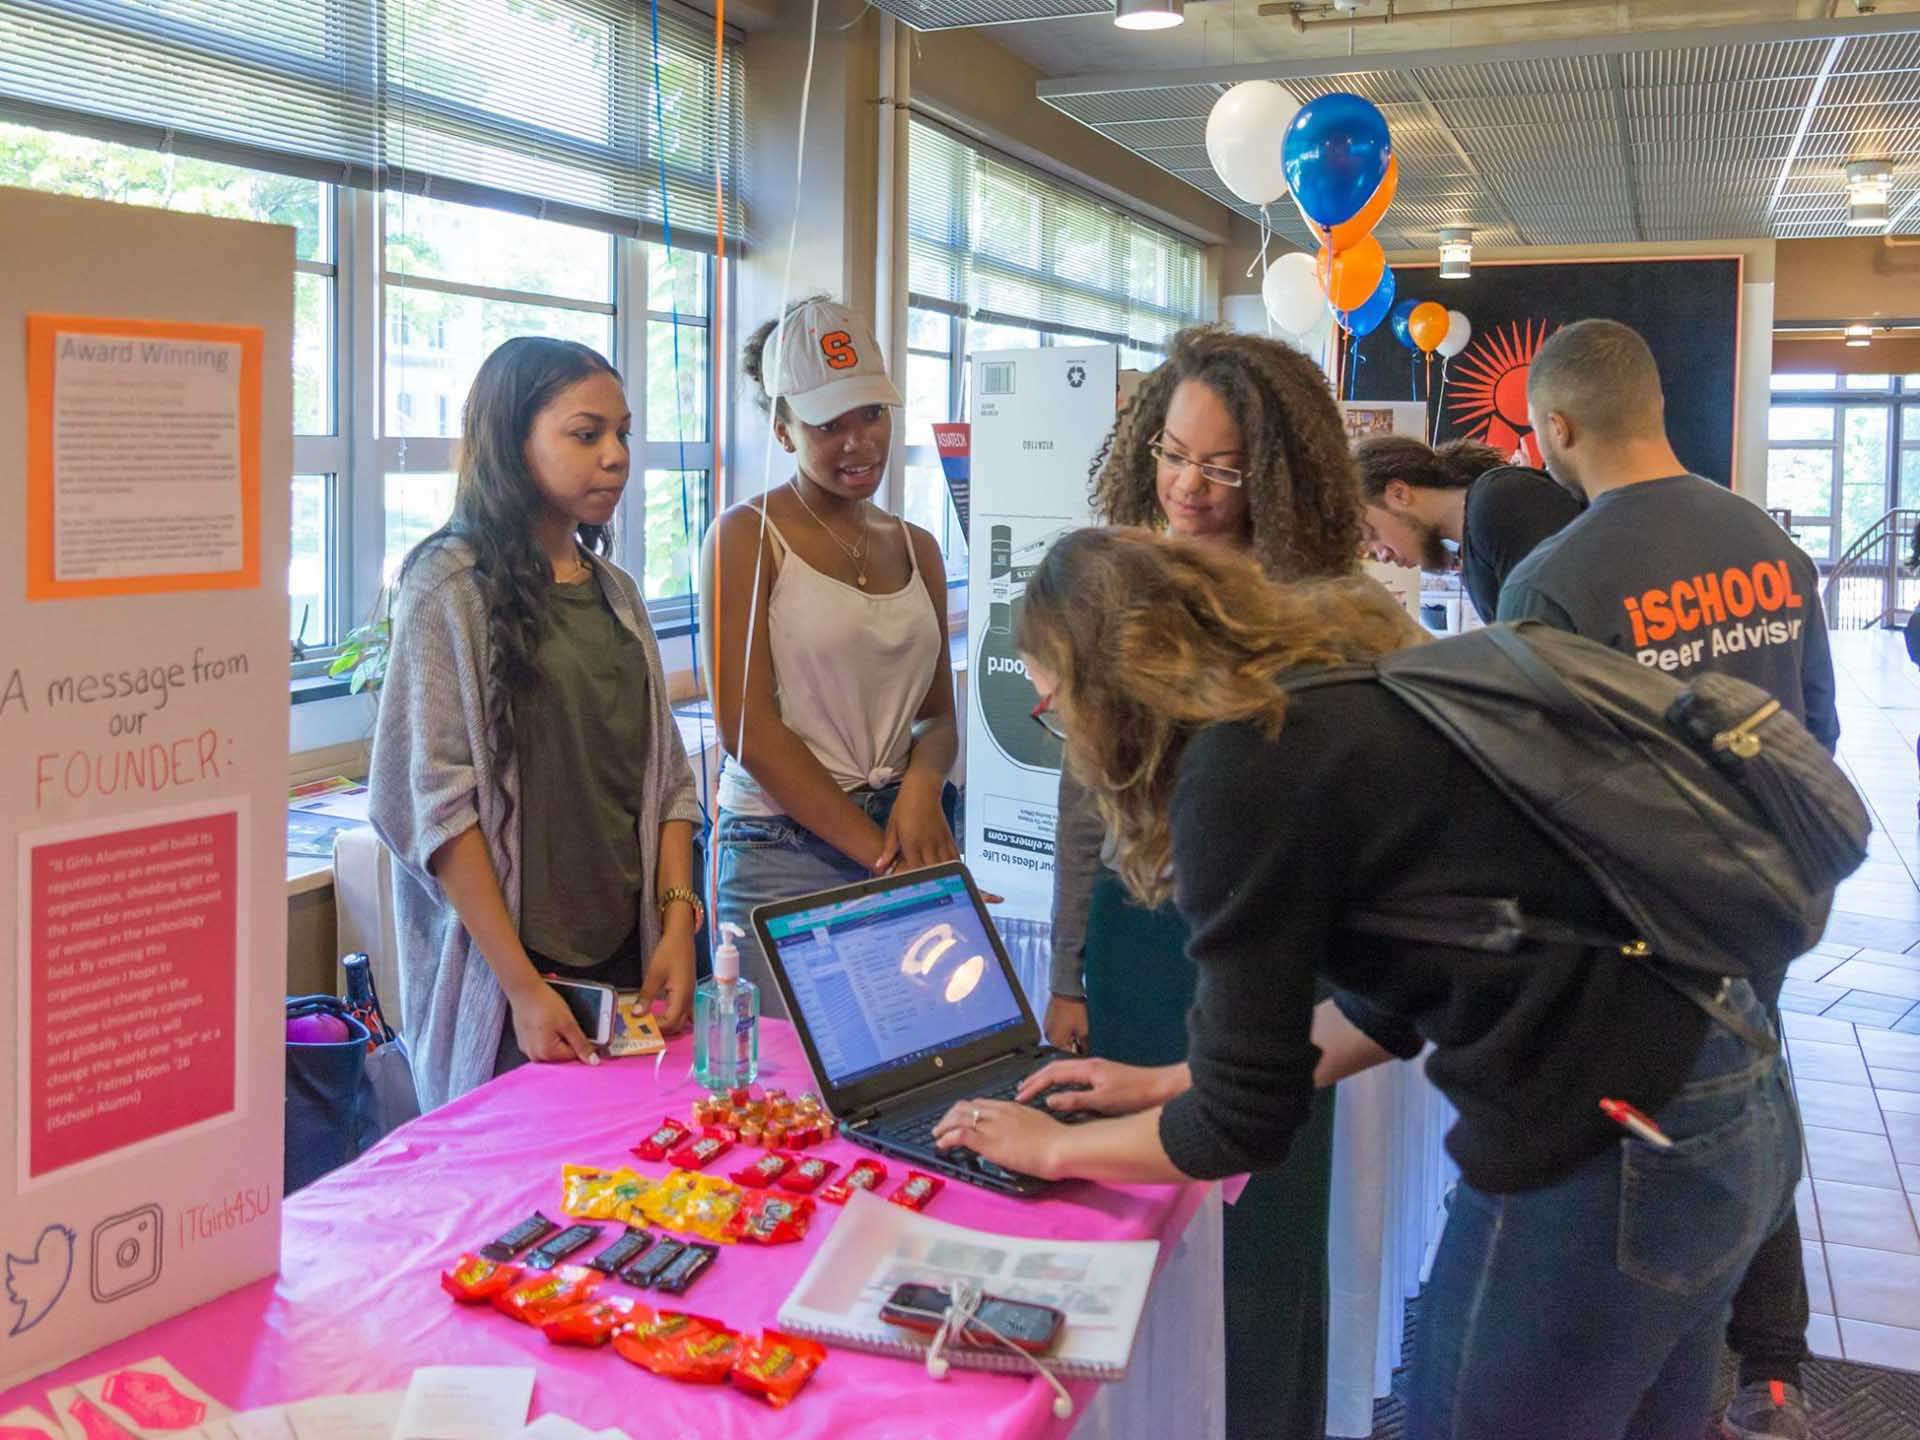 ITGirls table in the iSchool to hand out information